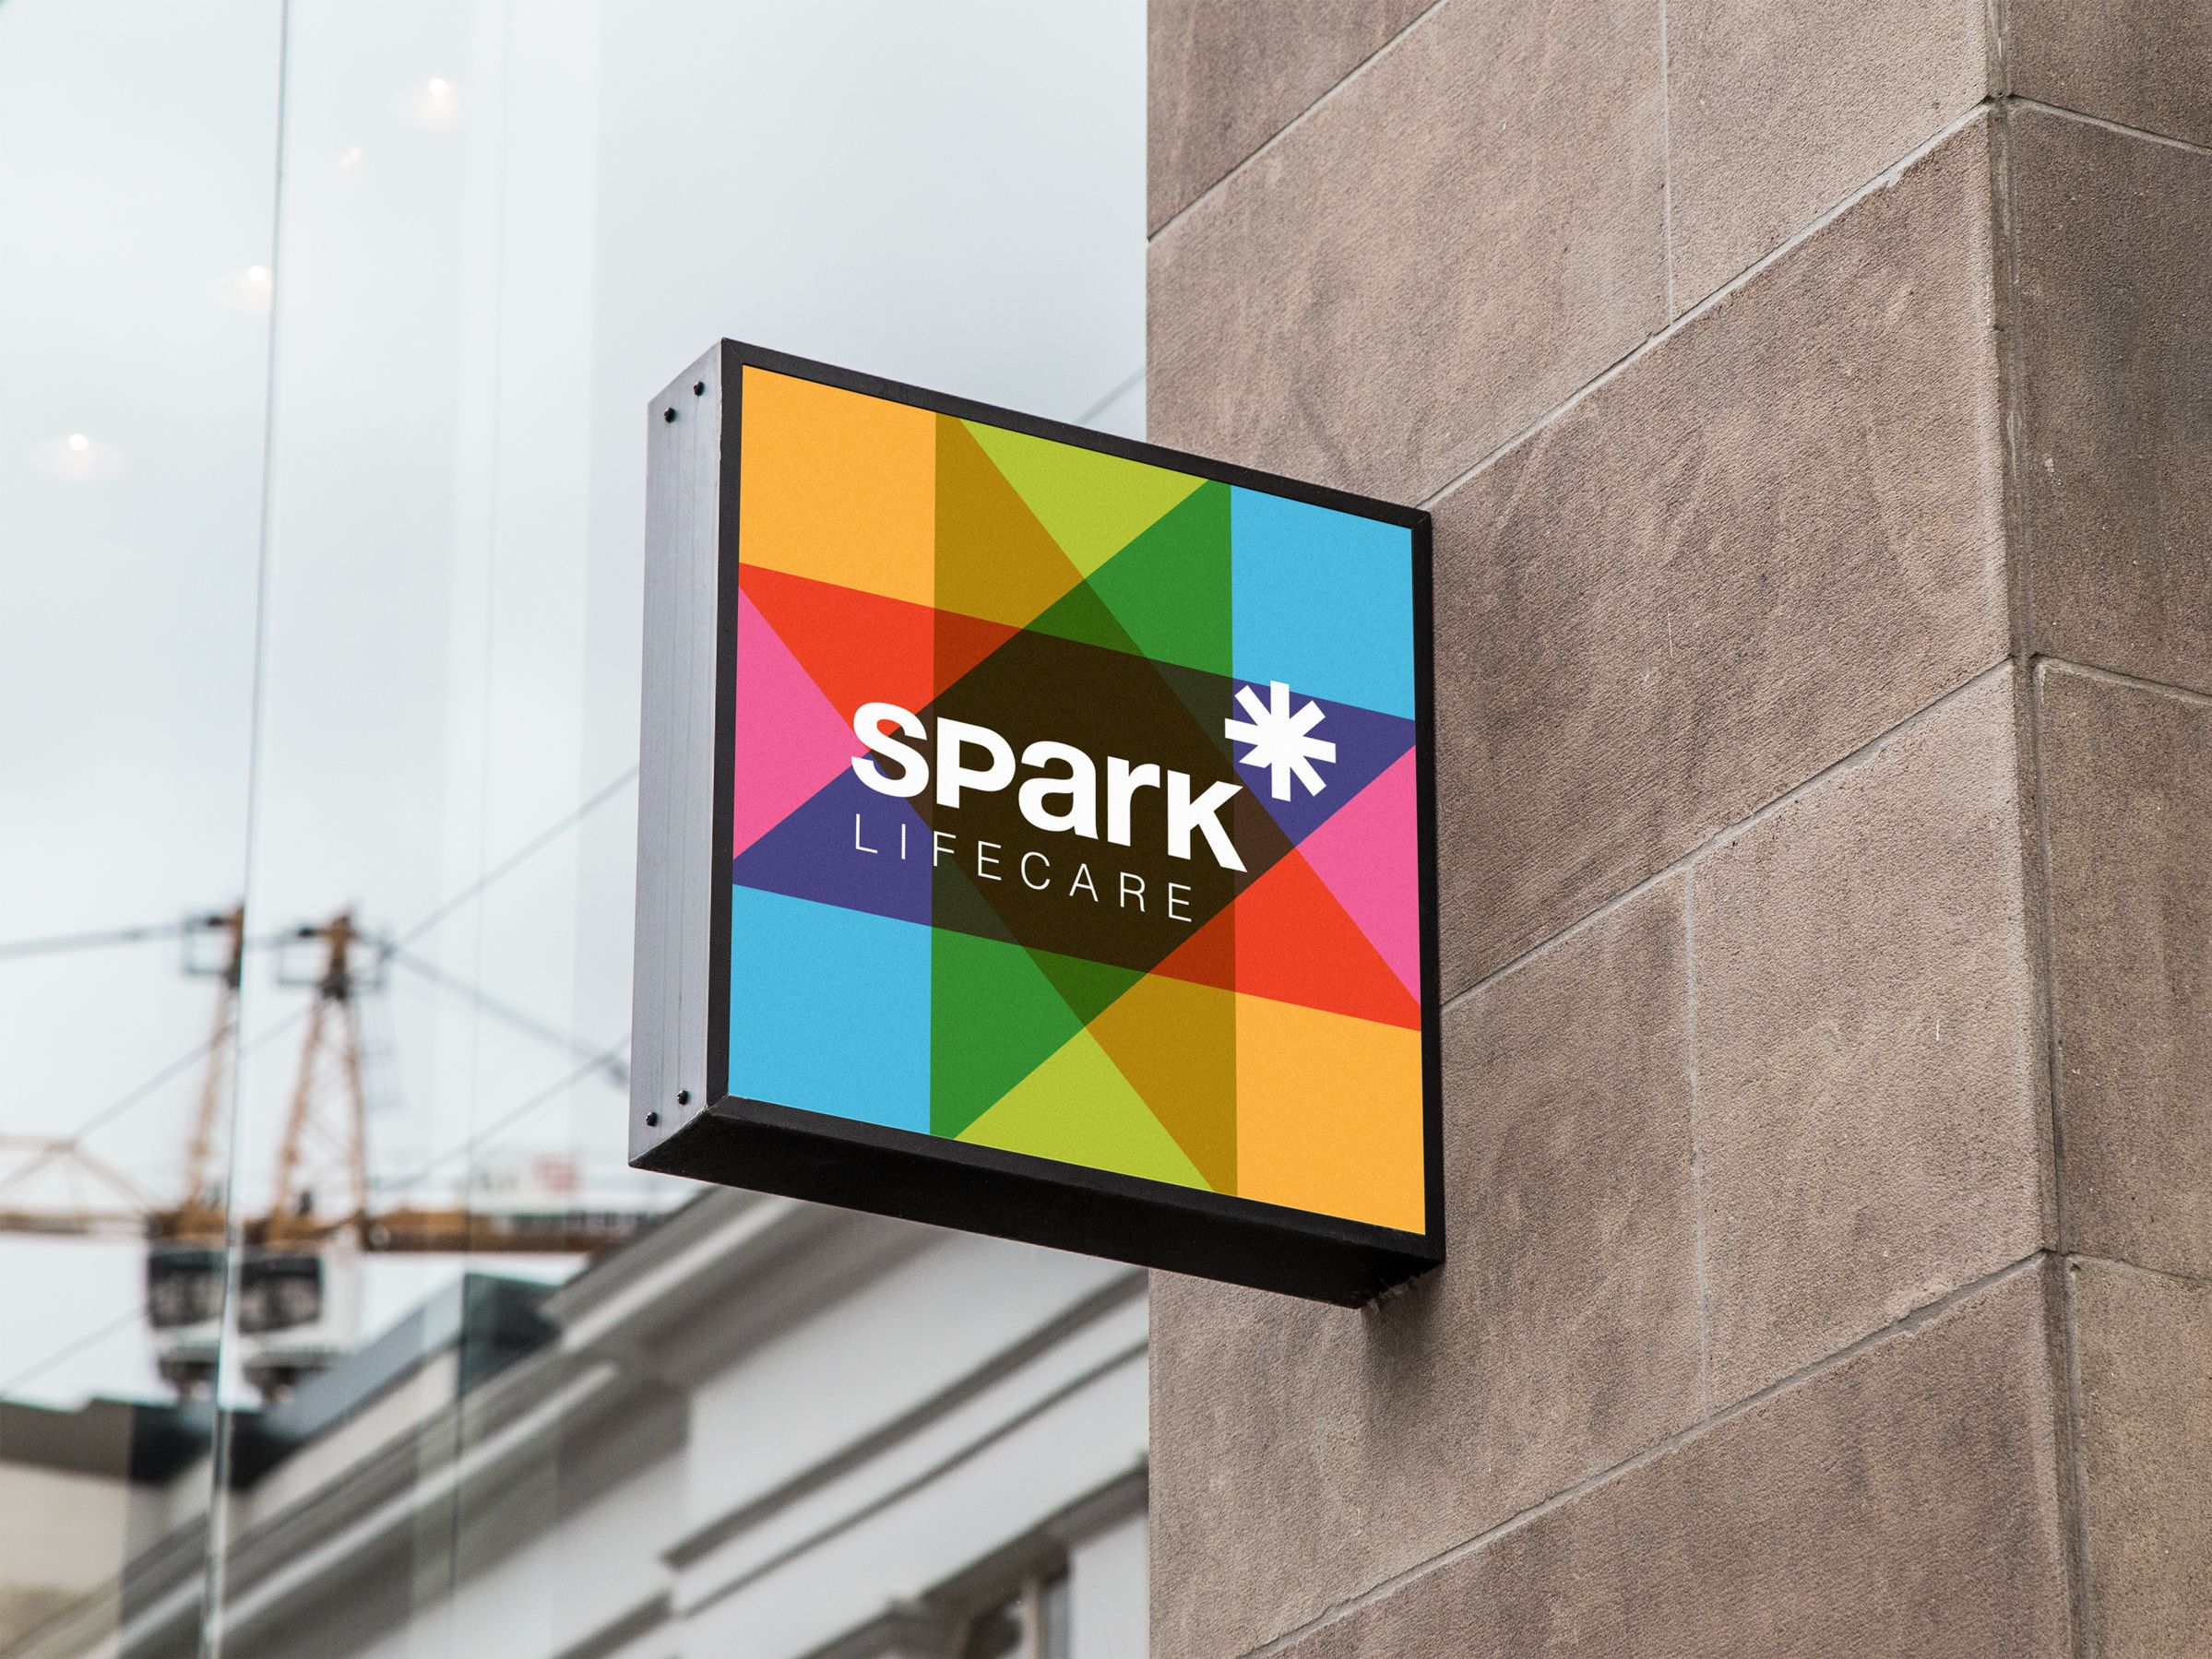 Signage for Spark Lifecare, life services organization by Ottawa Graphic Designer idApostle